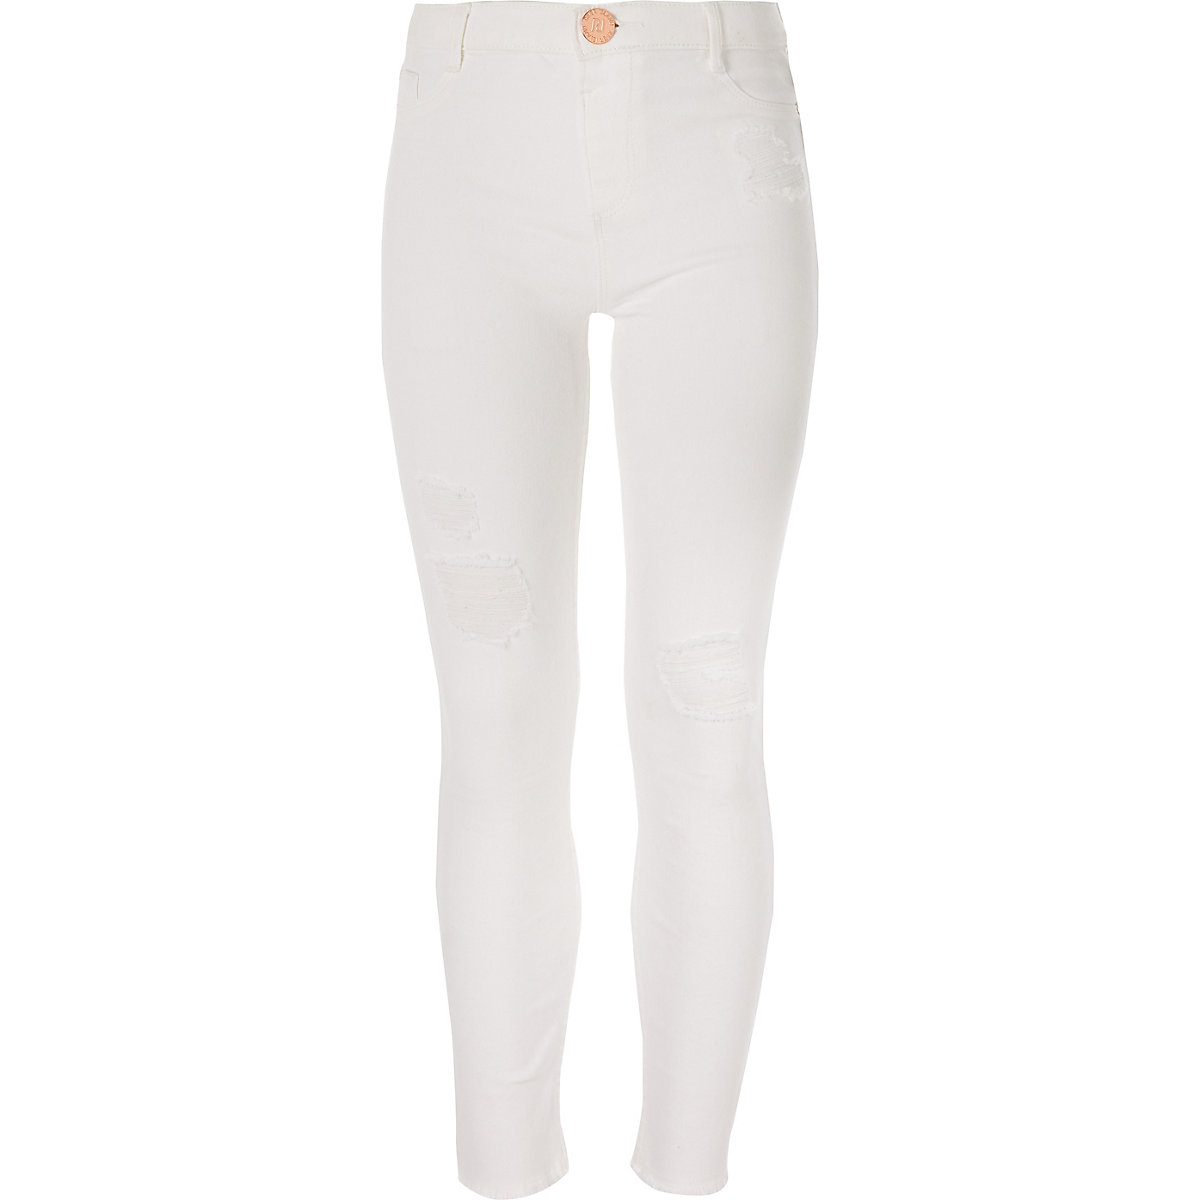 Girls white Molly ripped mid rise jeans